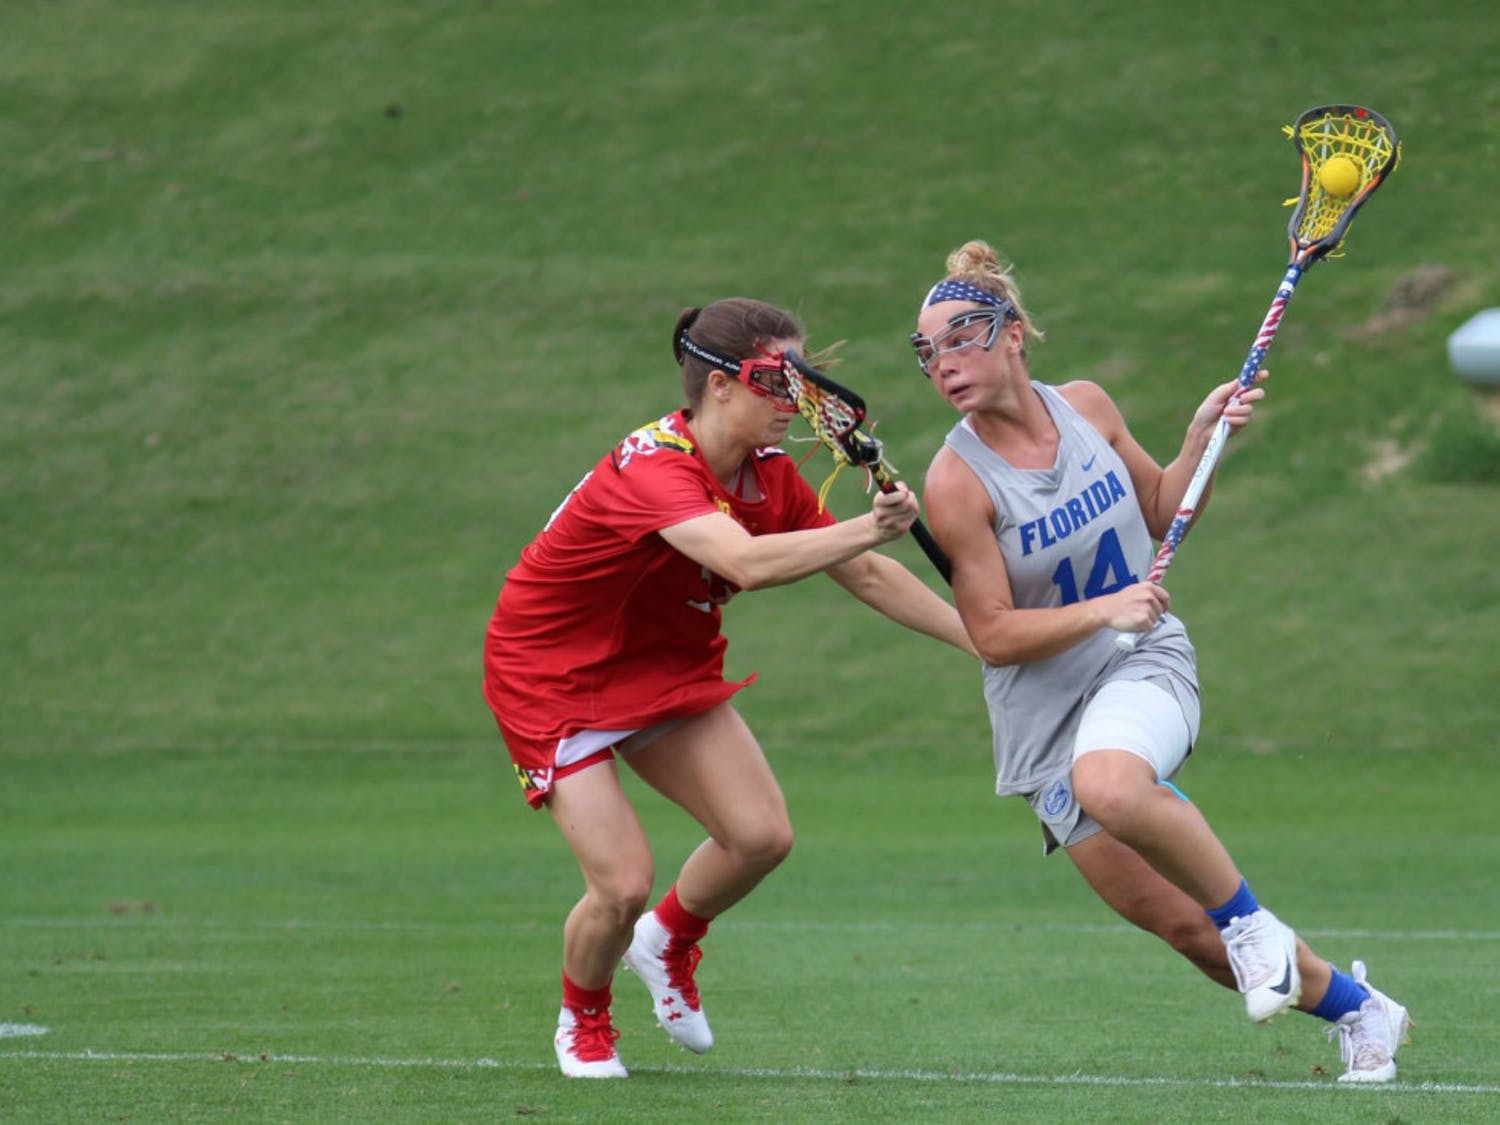 Senior attacker Lindsey Ronbeck scored six goals against Brown on Tuesday.